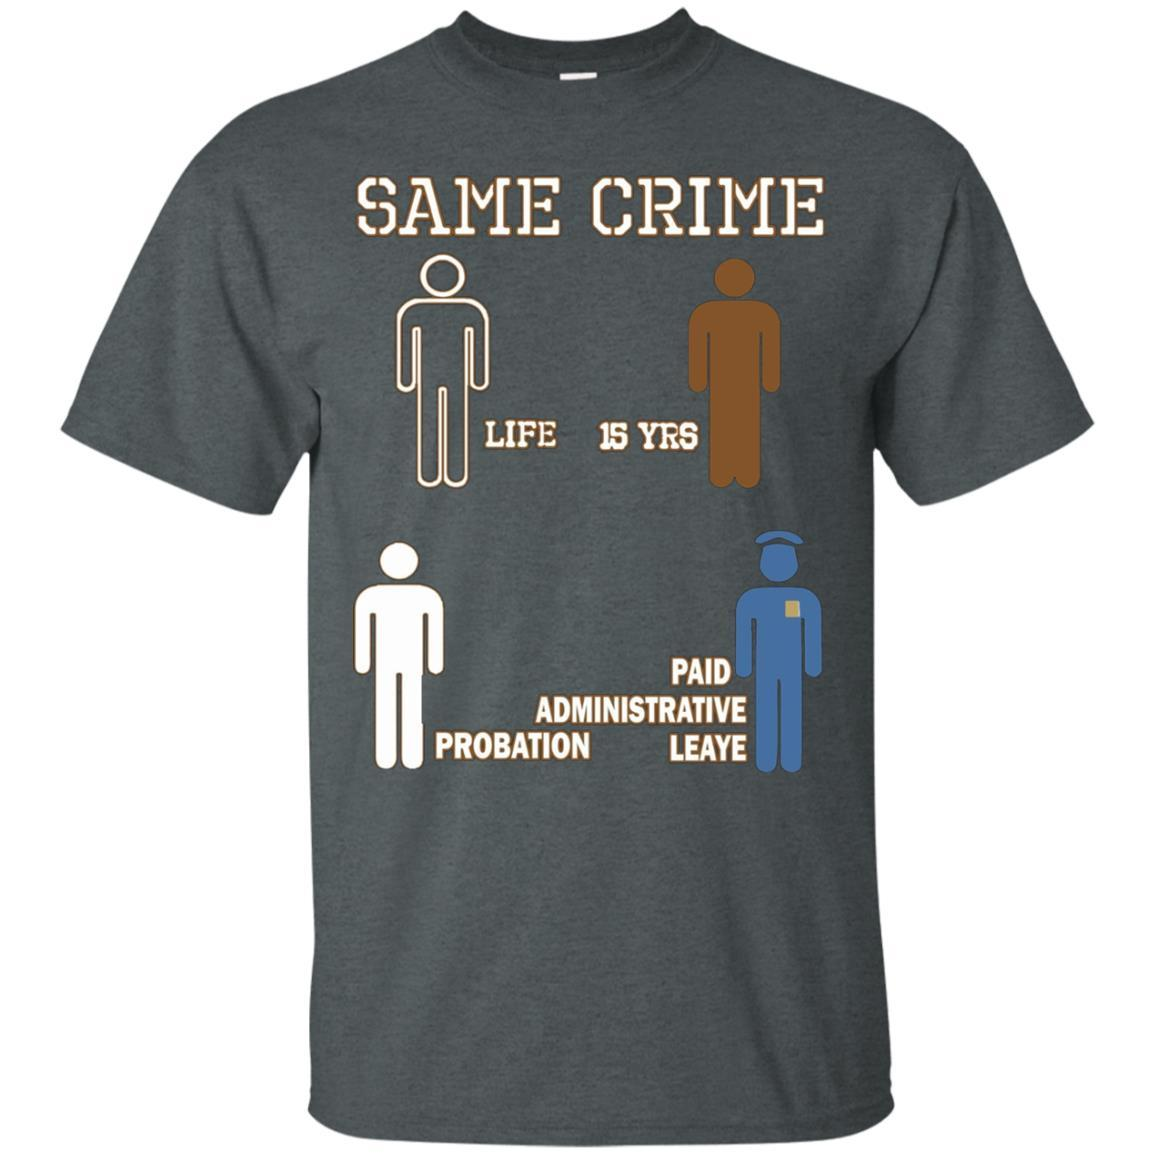 Same Crime T-Shirt Dark Heather / 5XL